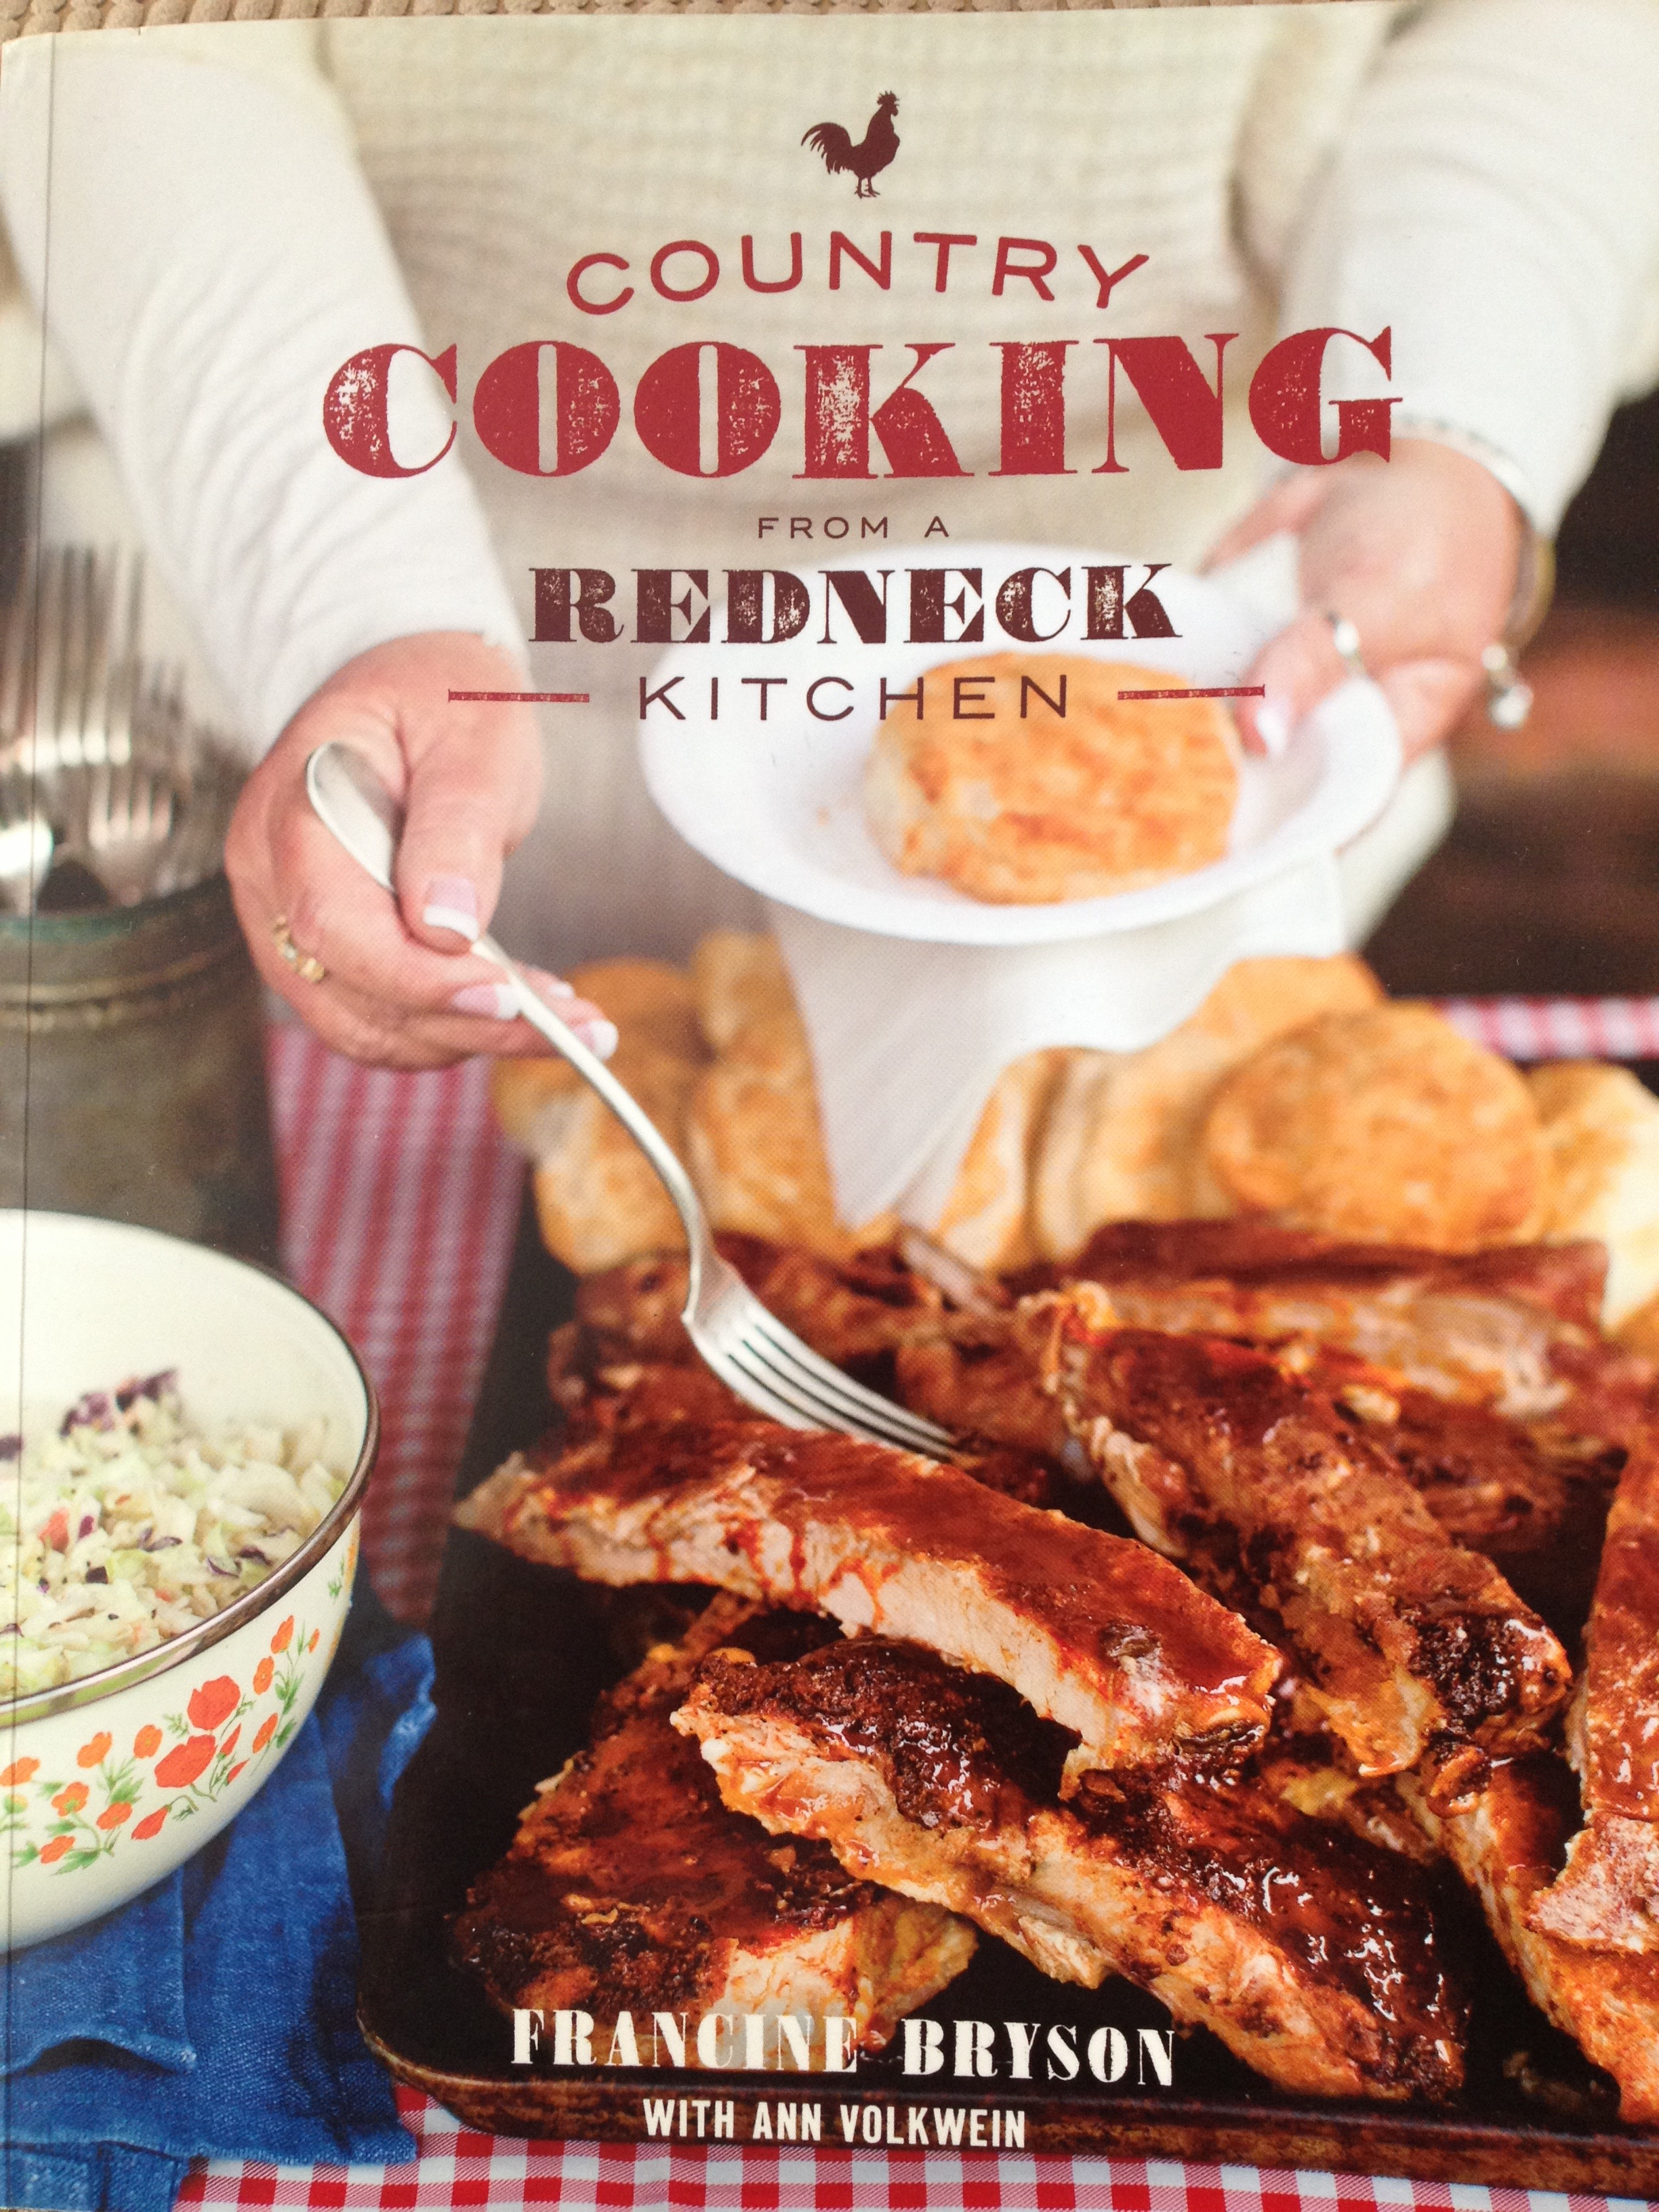 Country Cooking from a Redneck Kitchen: Review and Giveaway by The He Said She Said Experience